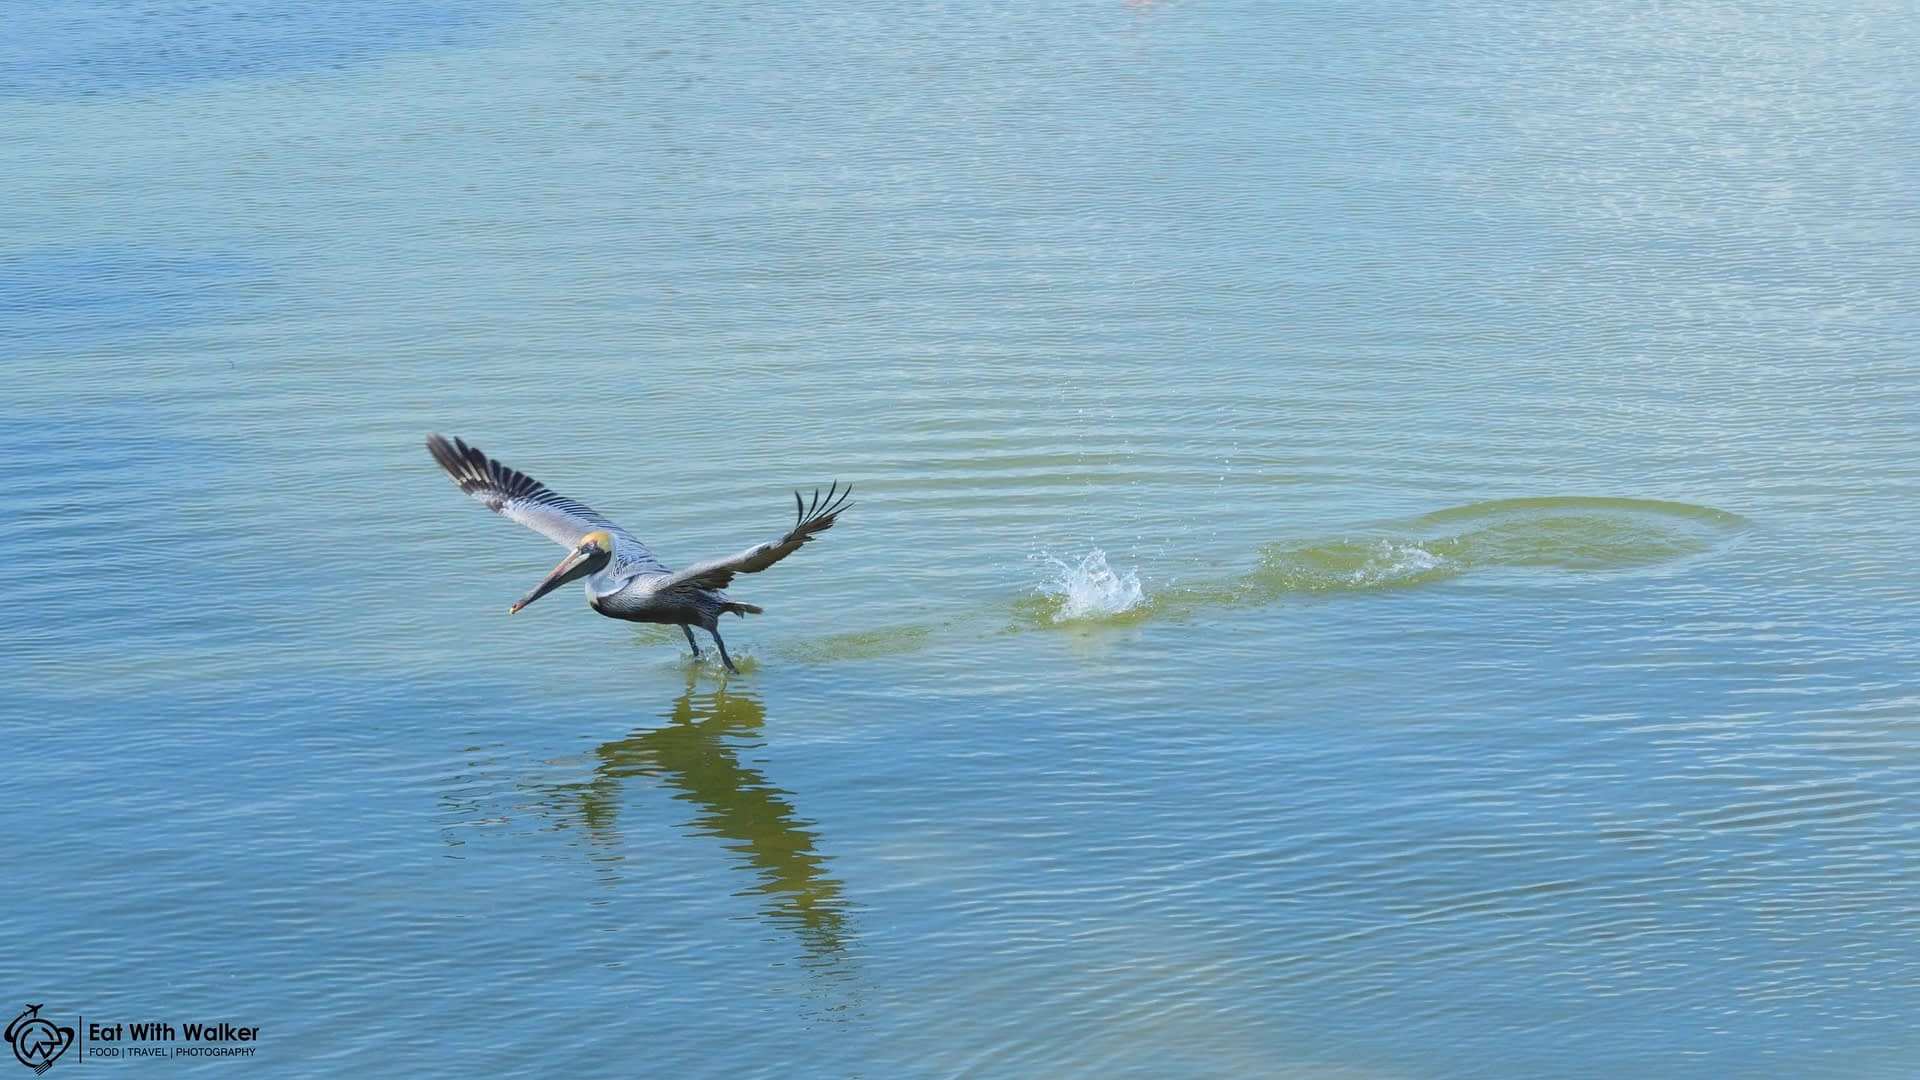 Pelican Taking Flight - Isla de los Parajos